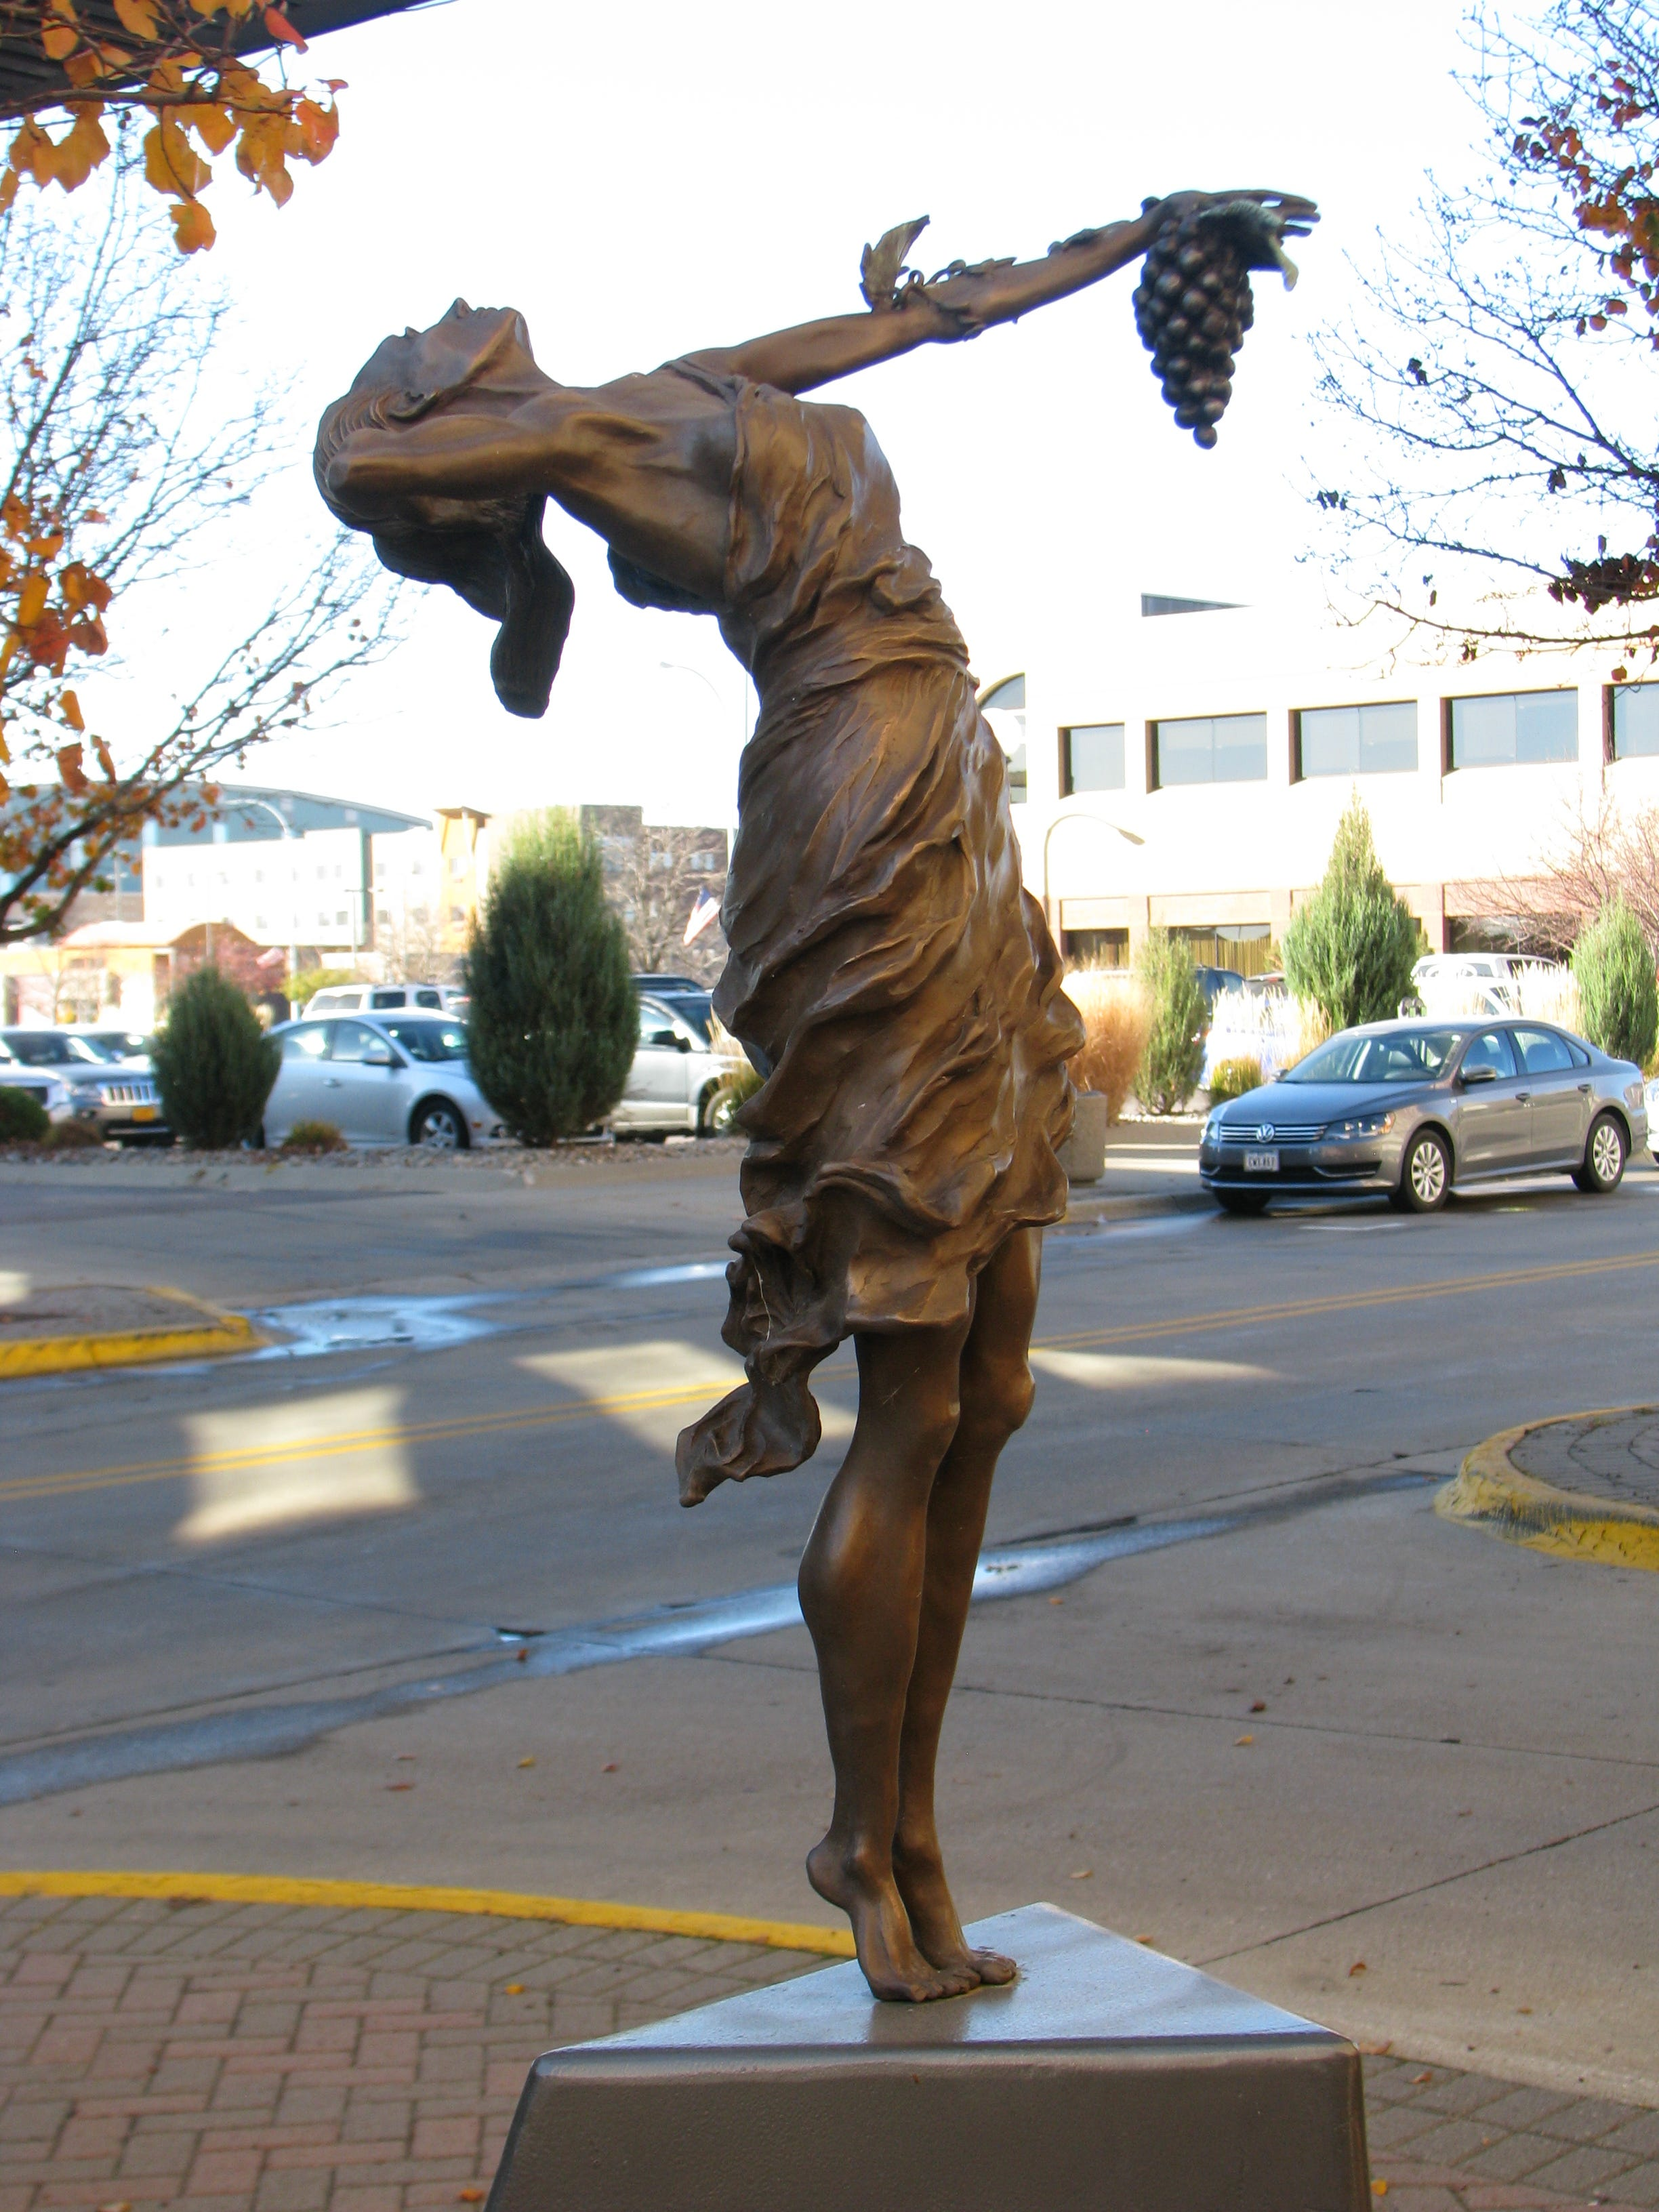 The 'Goddess of Grapes' caper: Homeless Iowa woman recovers and returns stolen sculpture to Sioux City Art Center